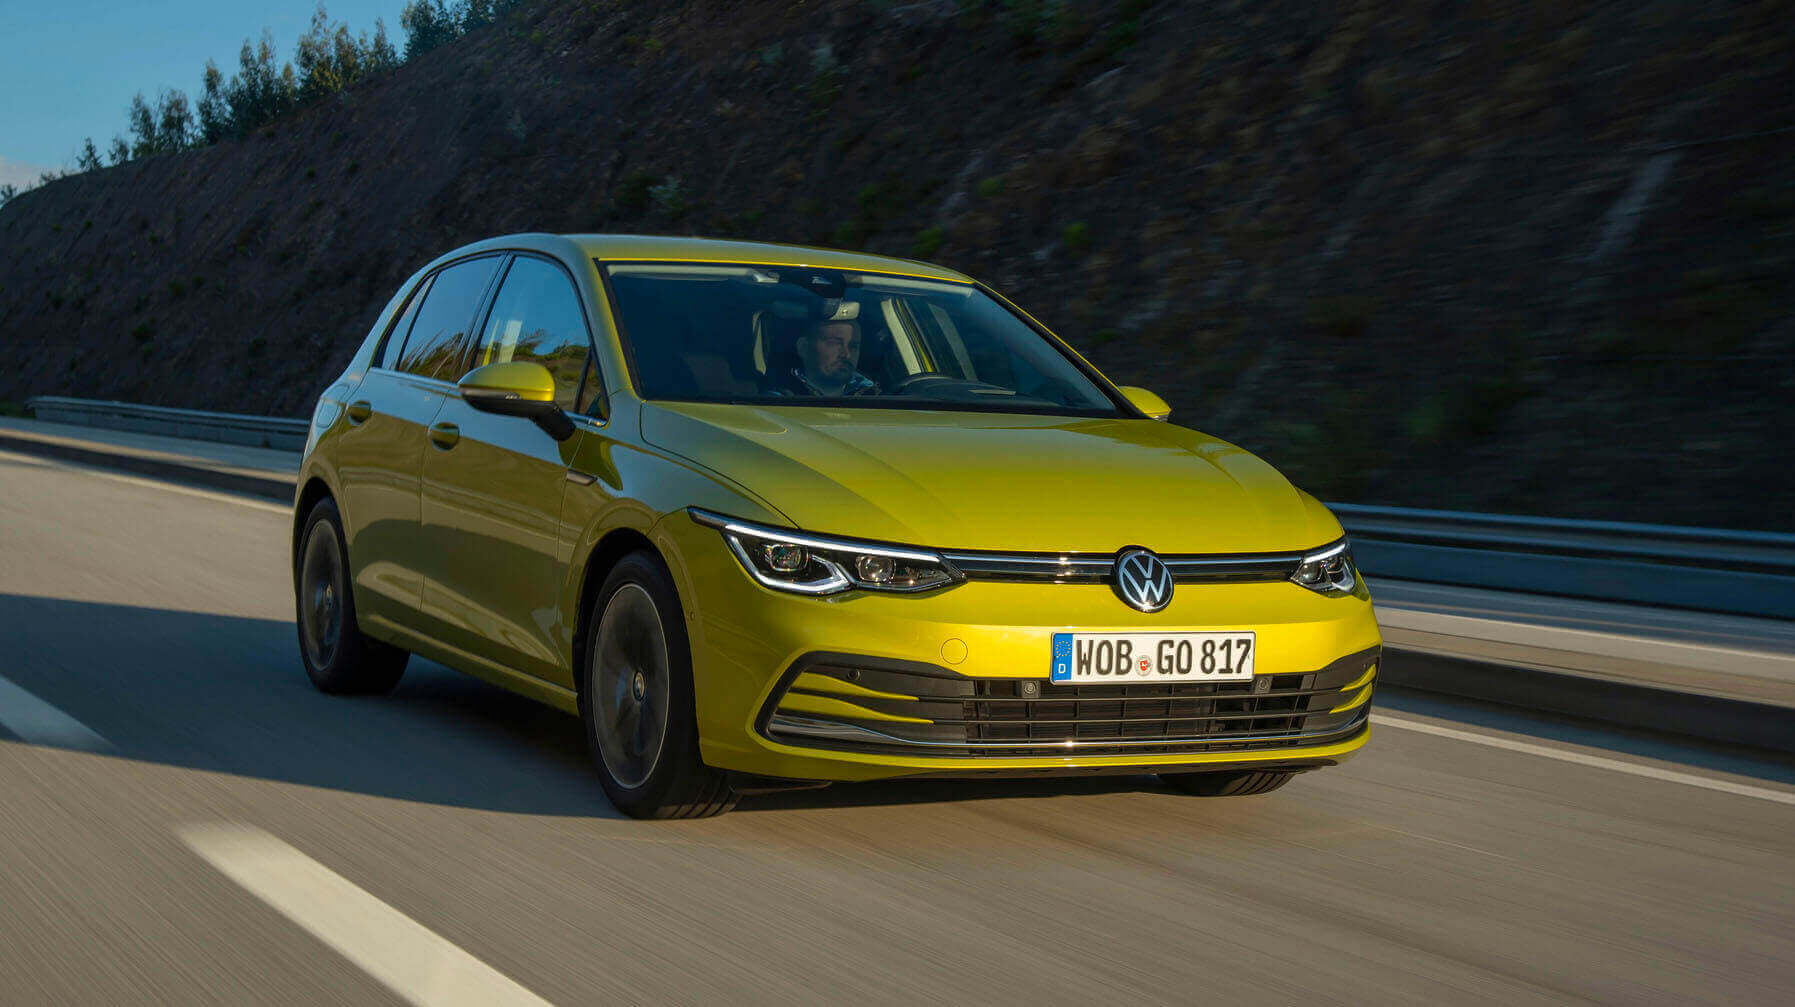 The best new cars for spring 2020; Volkswagen Golf main